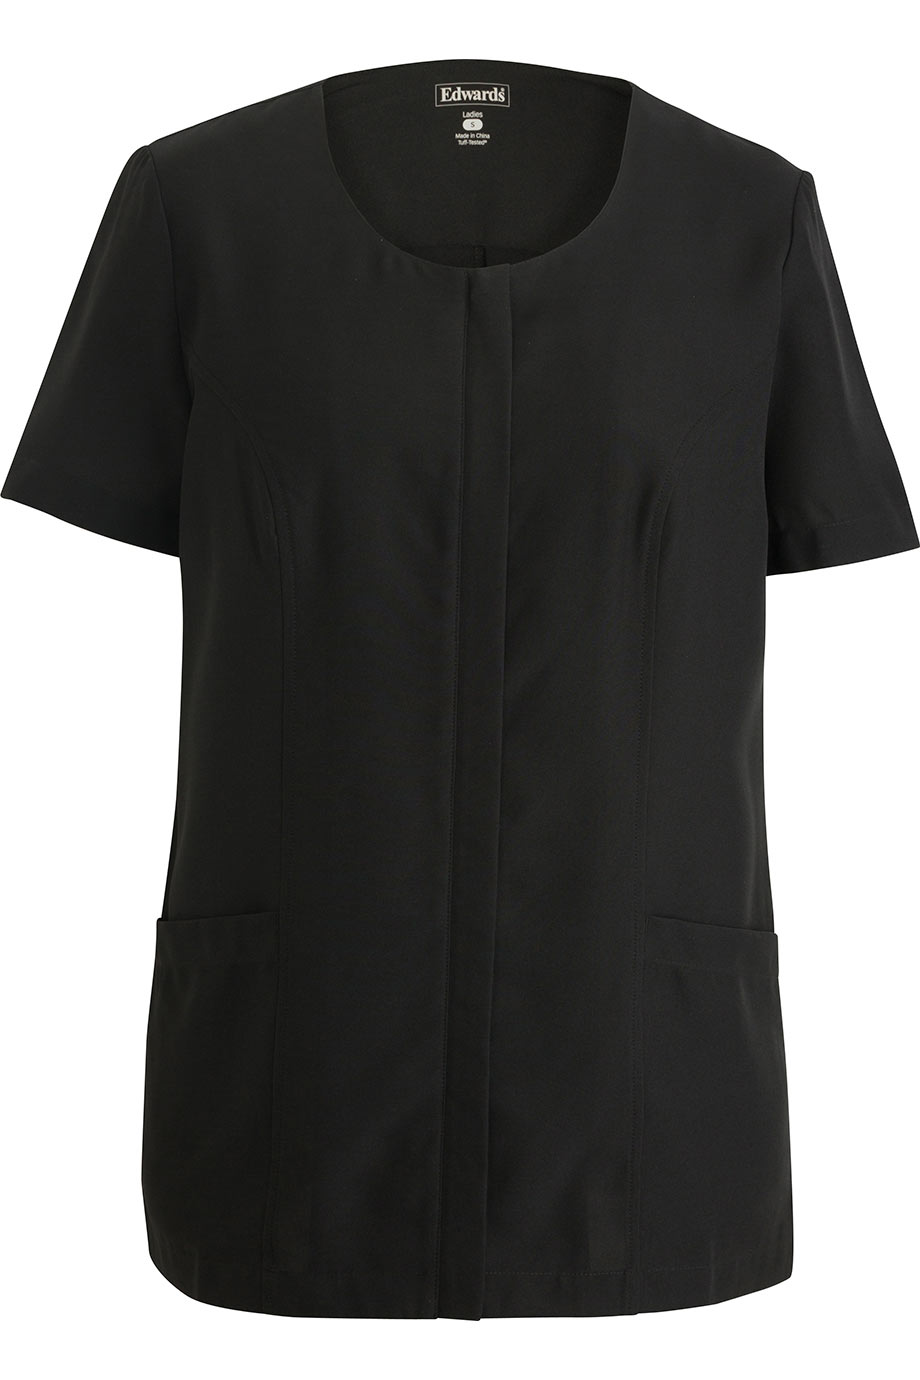 Edwards Ladies Scoop Neck Spun Poly Tunic